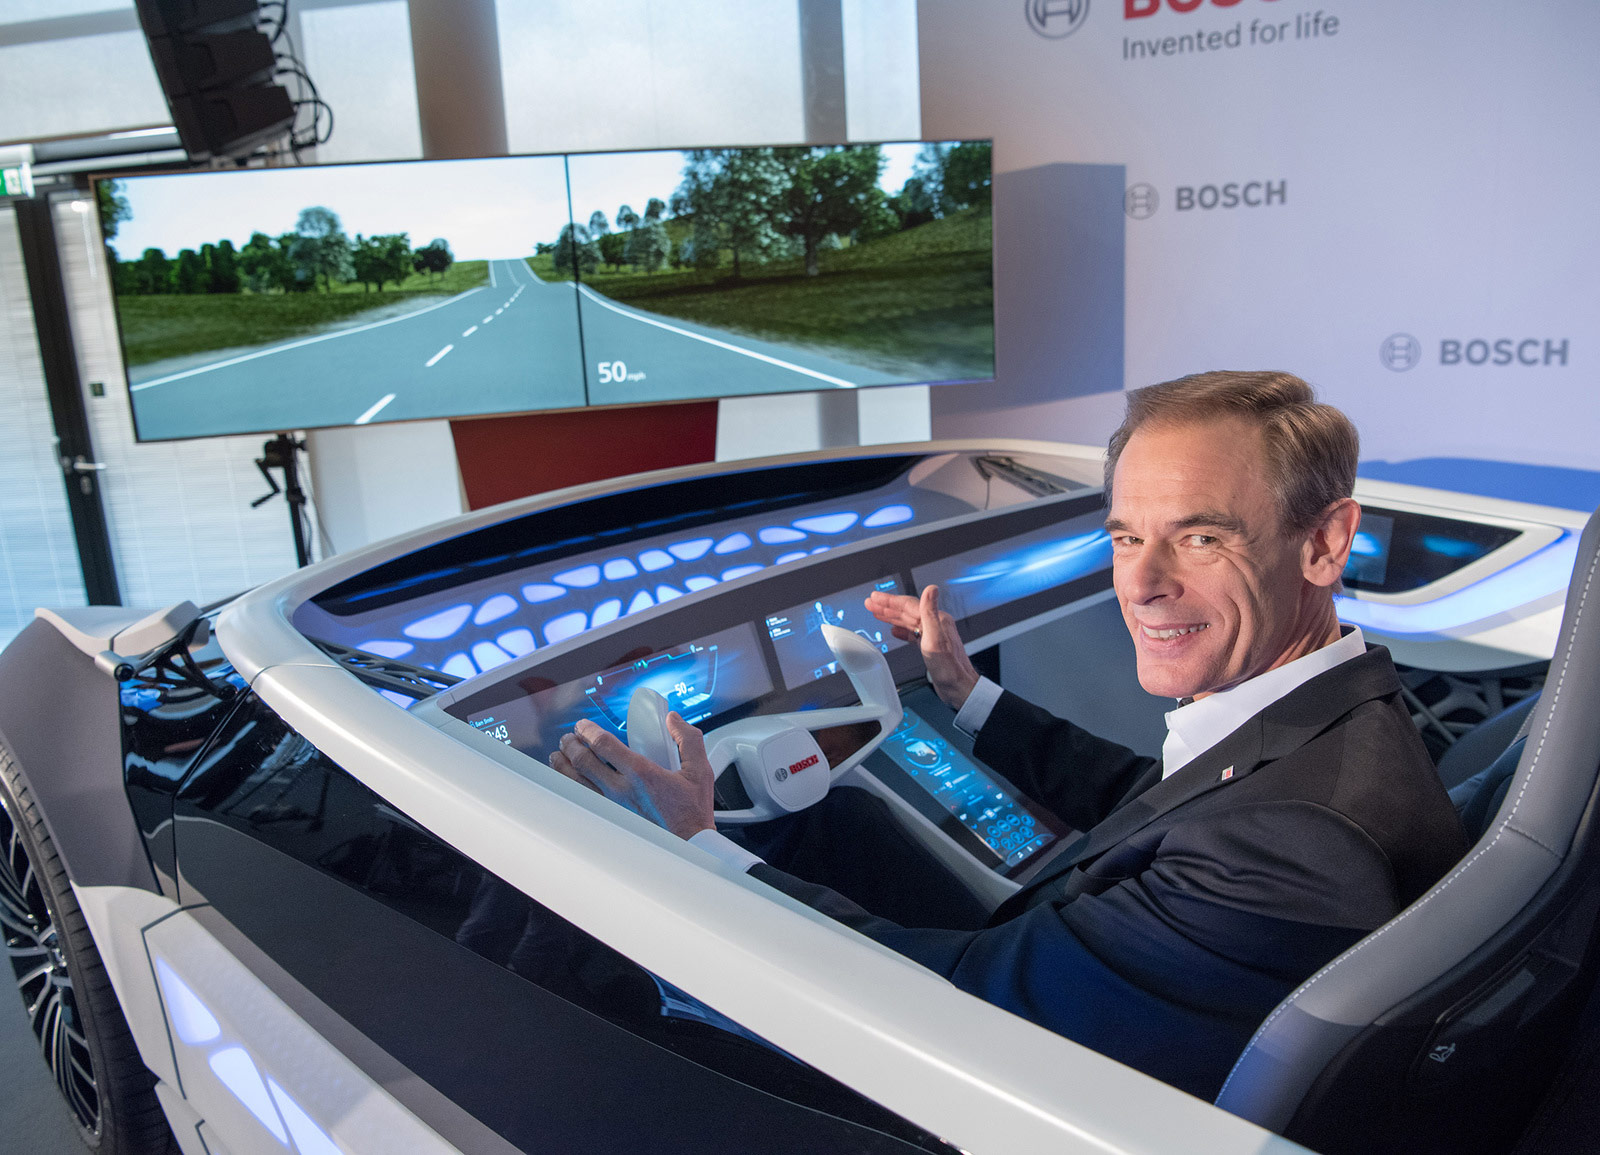 """Bosch CEO Denner states """"The car as we know it will soon be history"""""""